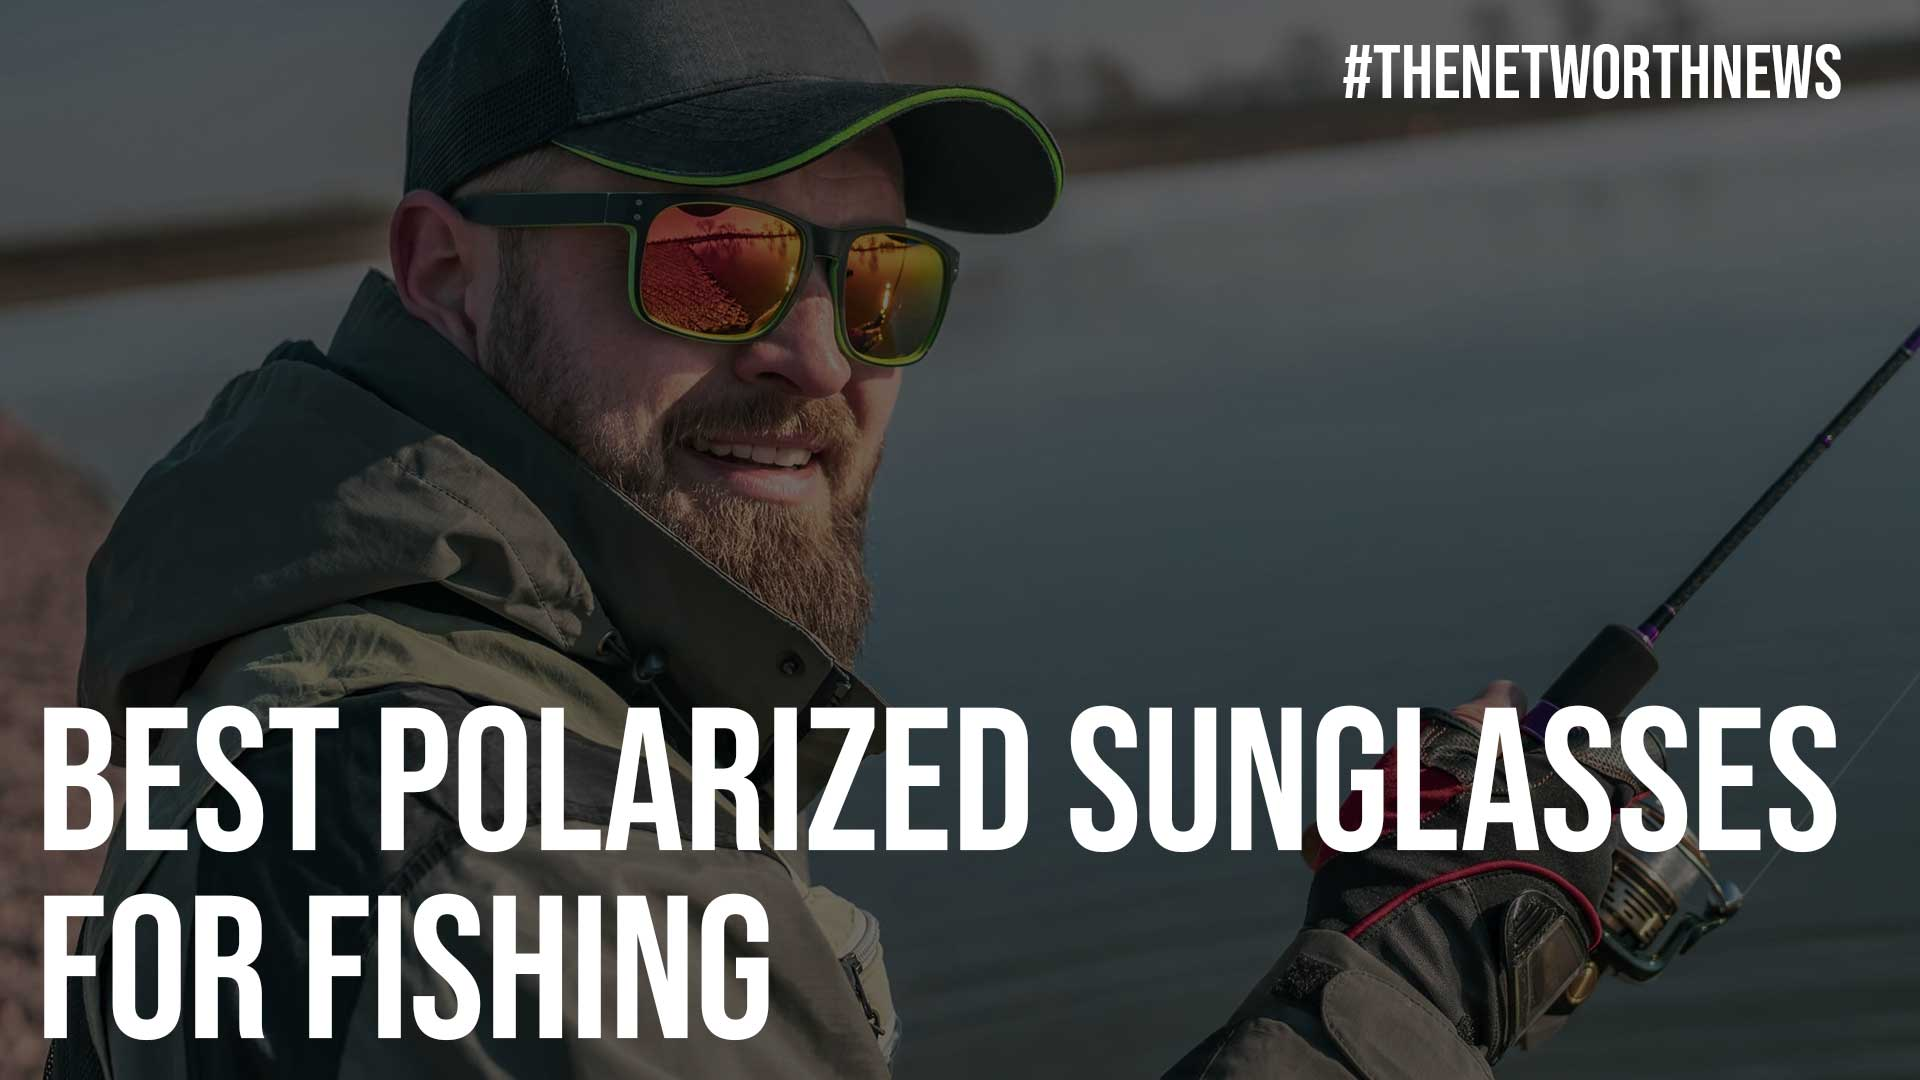 Best Polarized Sunglasses for Fishing